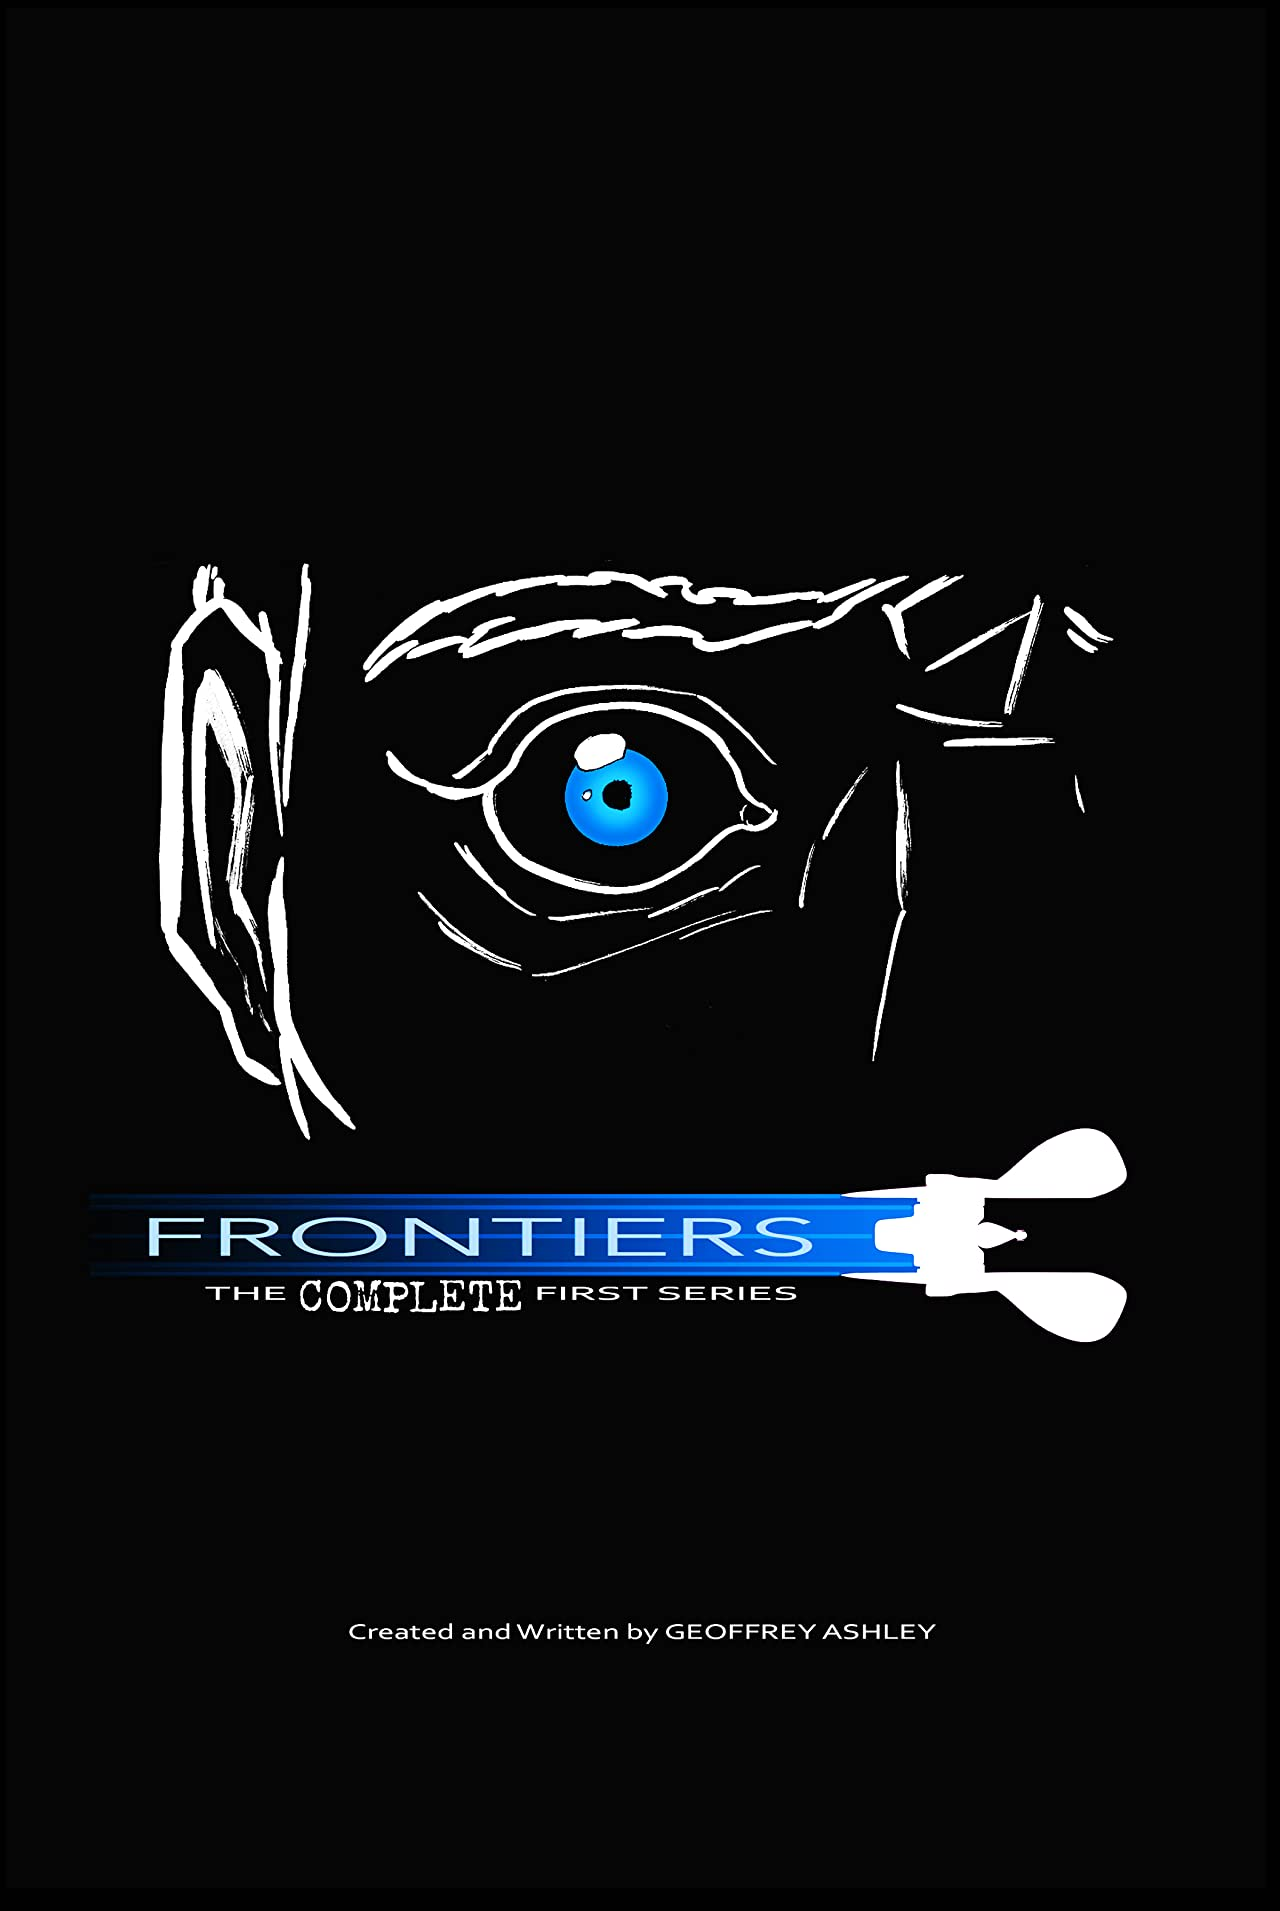 Frontiers: The Complete First Series